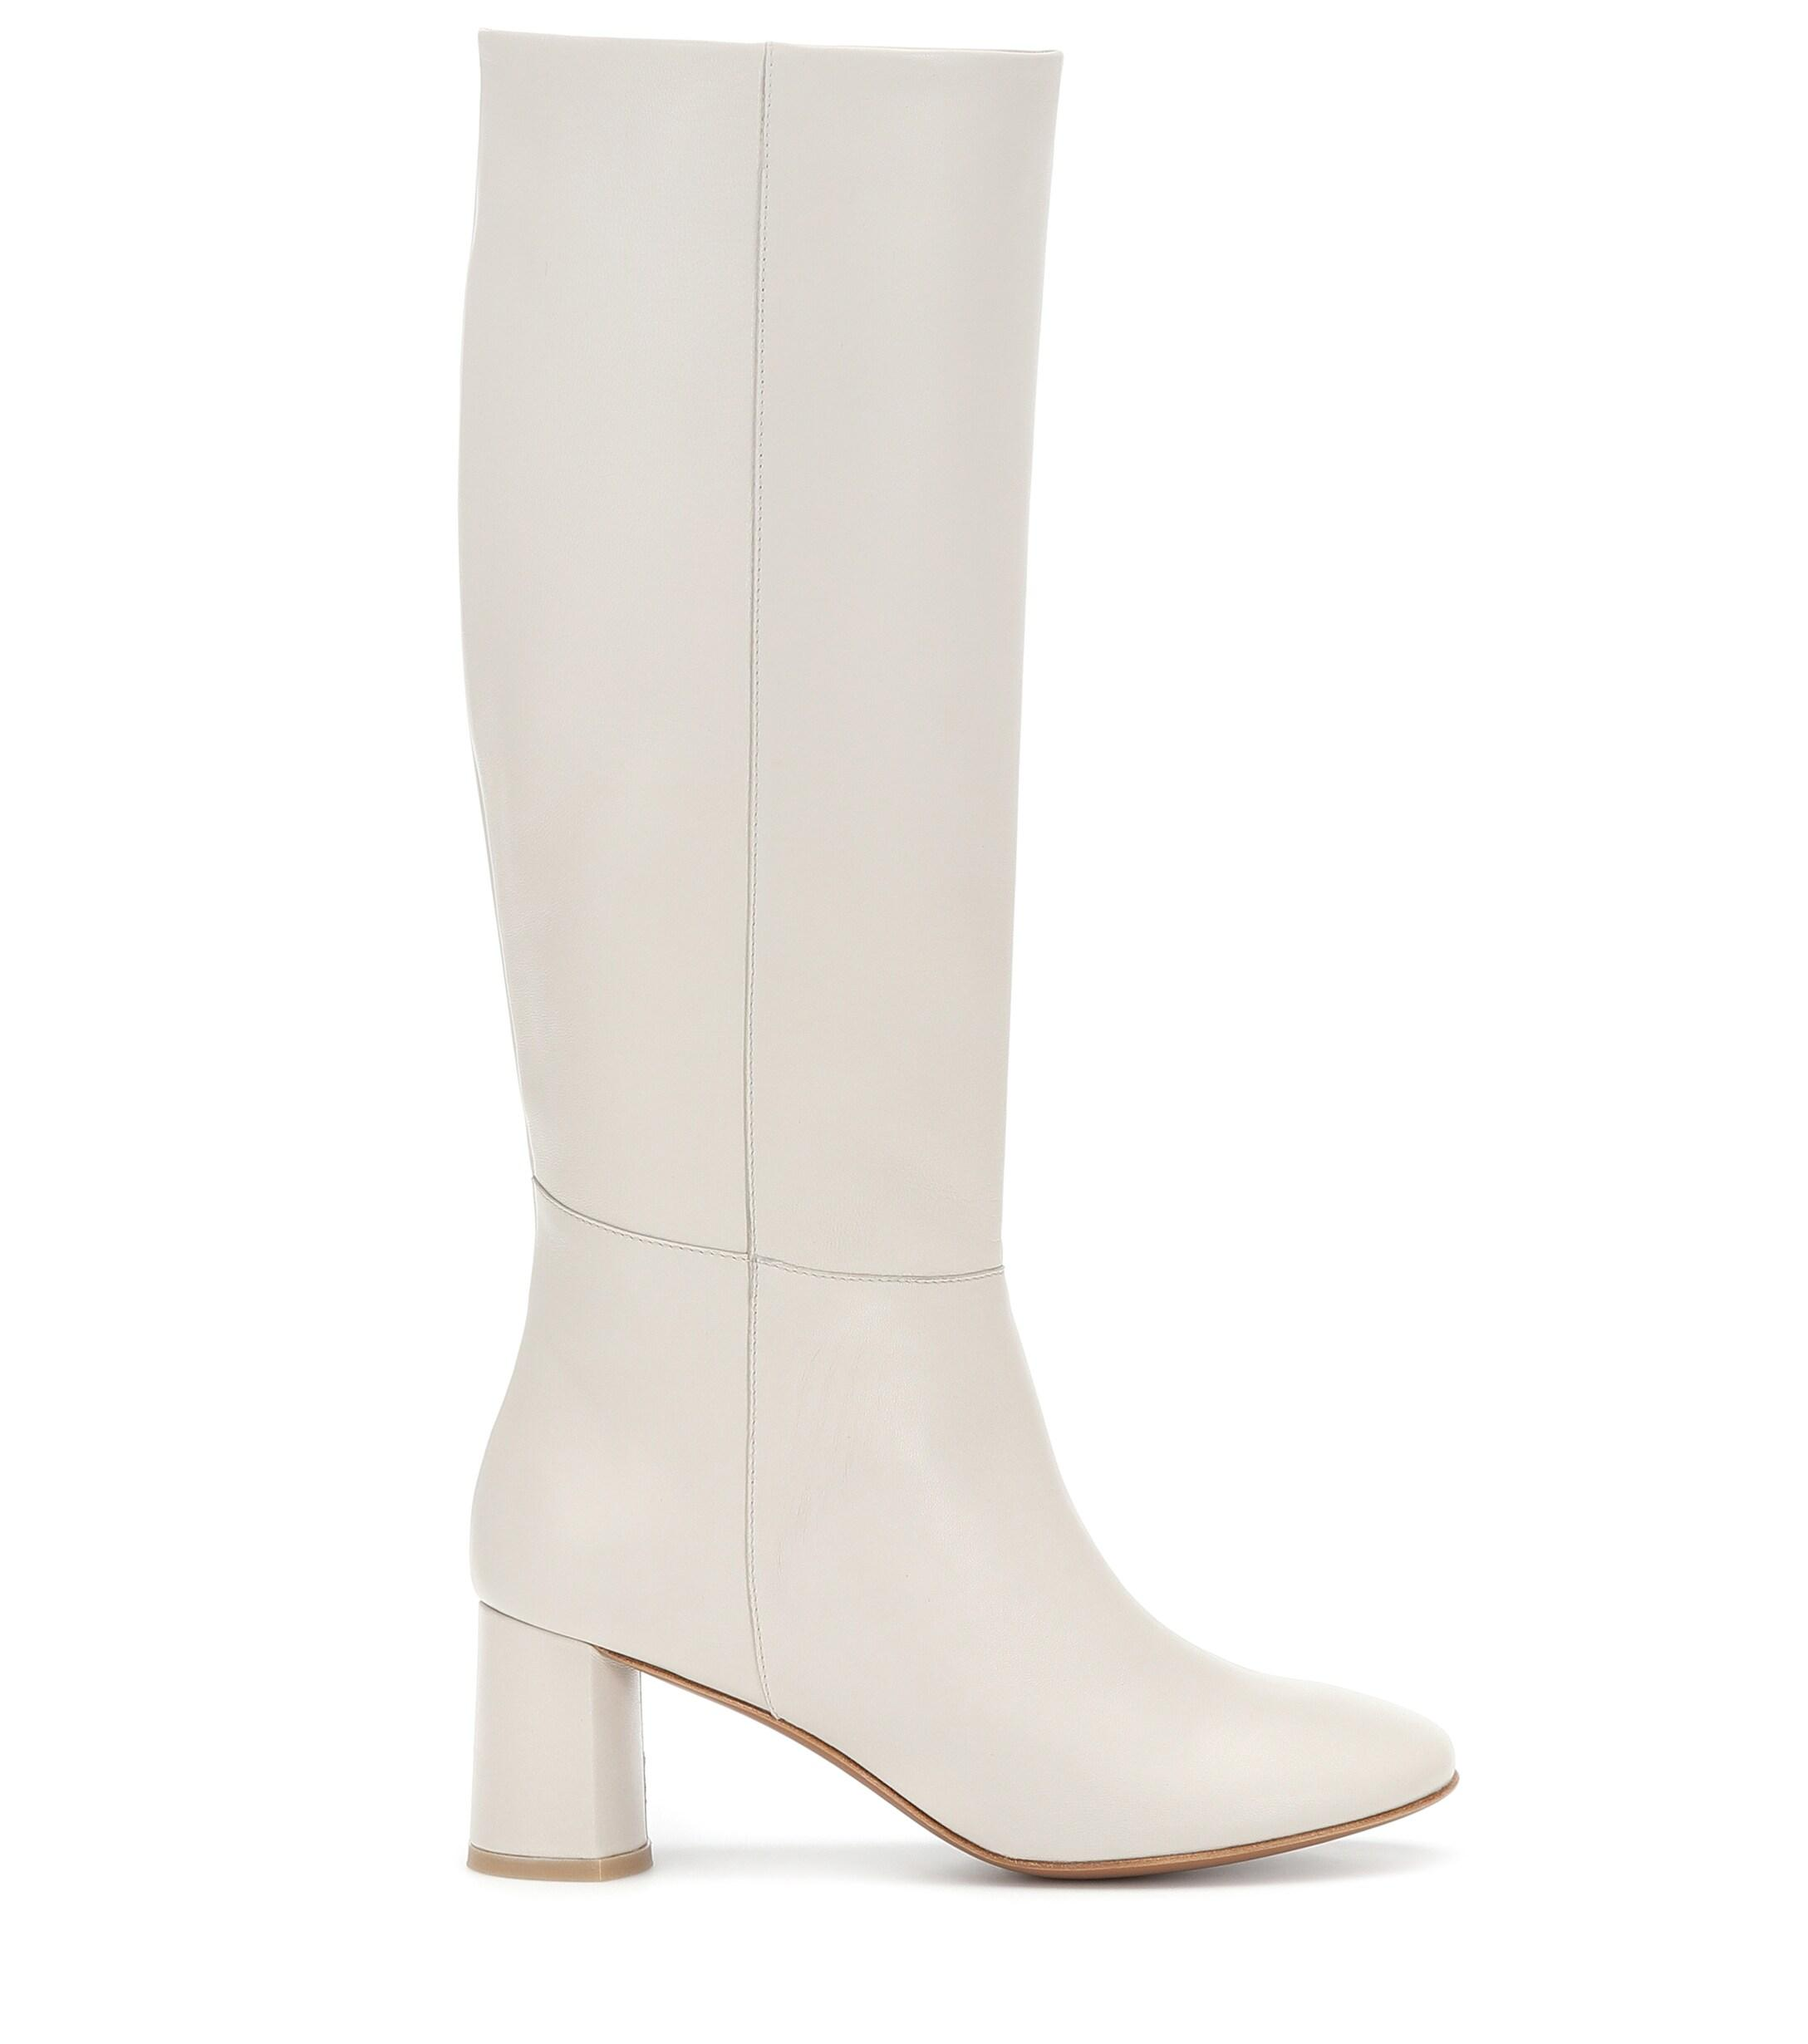 Loq Donna Knee High Leather Boots In White Lyst